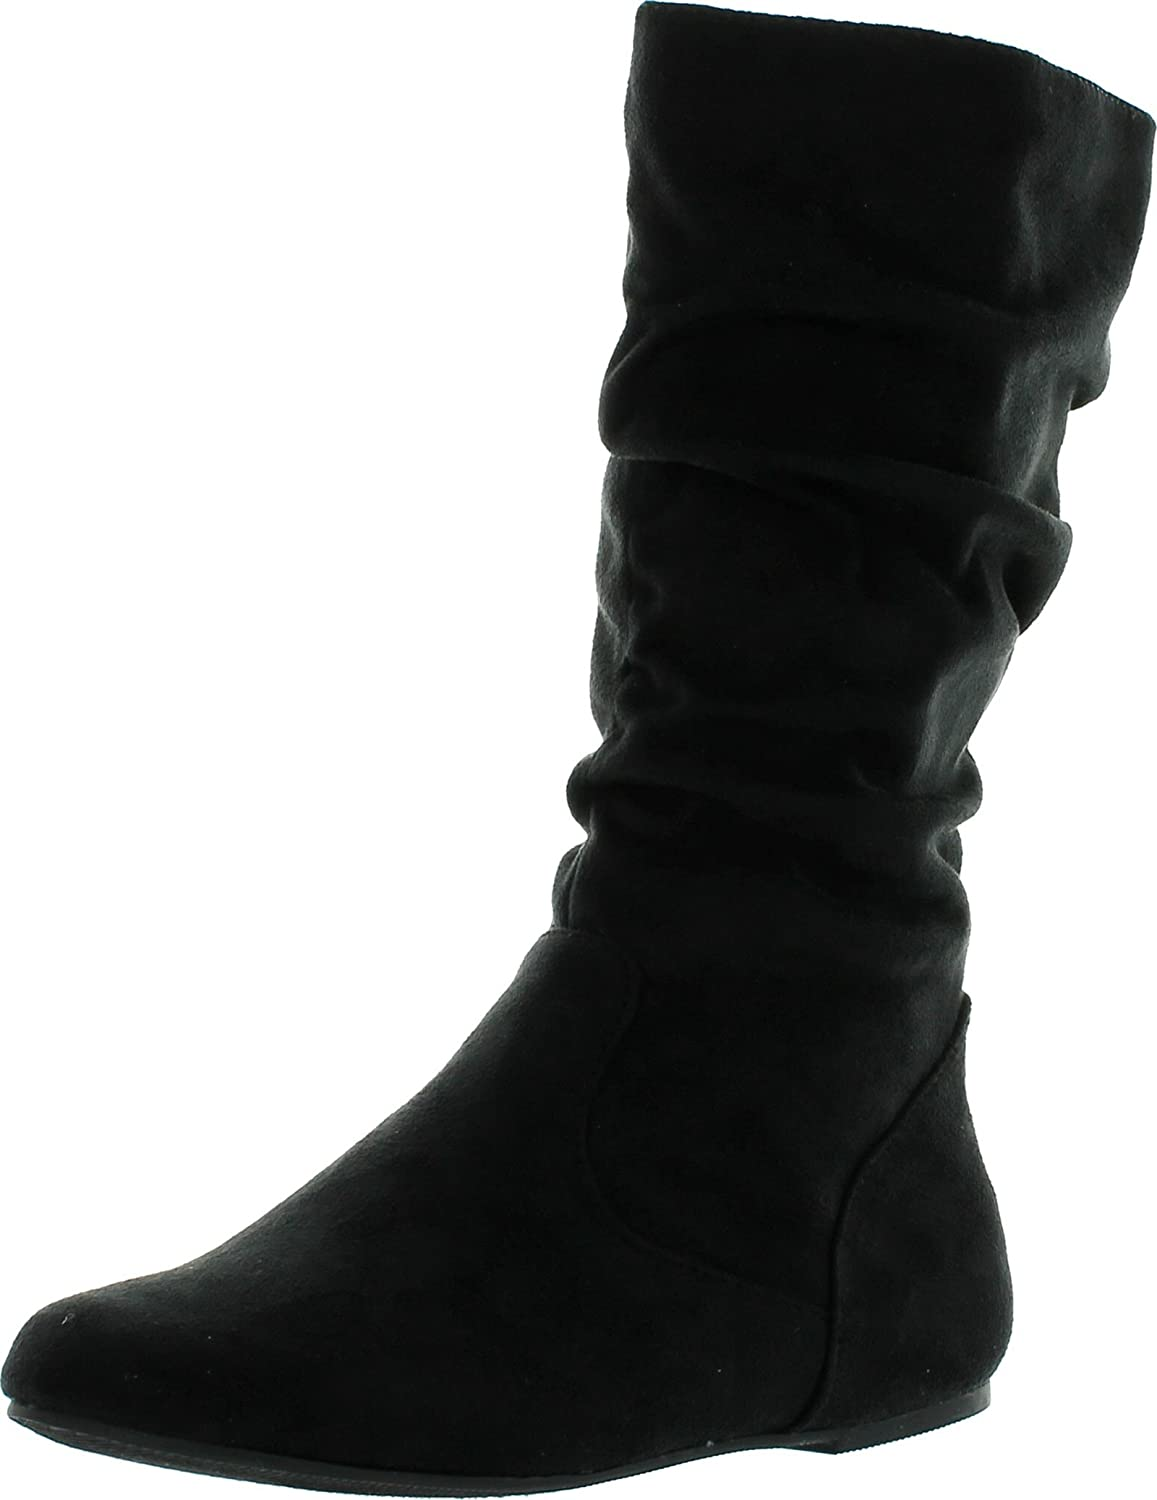 Soda Womens Zuluu-2 Girly Fashion Slouchy Knee-High Flat Boots with Side Zipper in Black Faux Suede